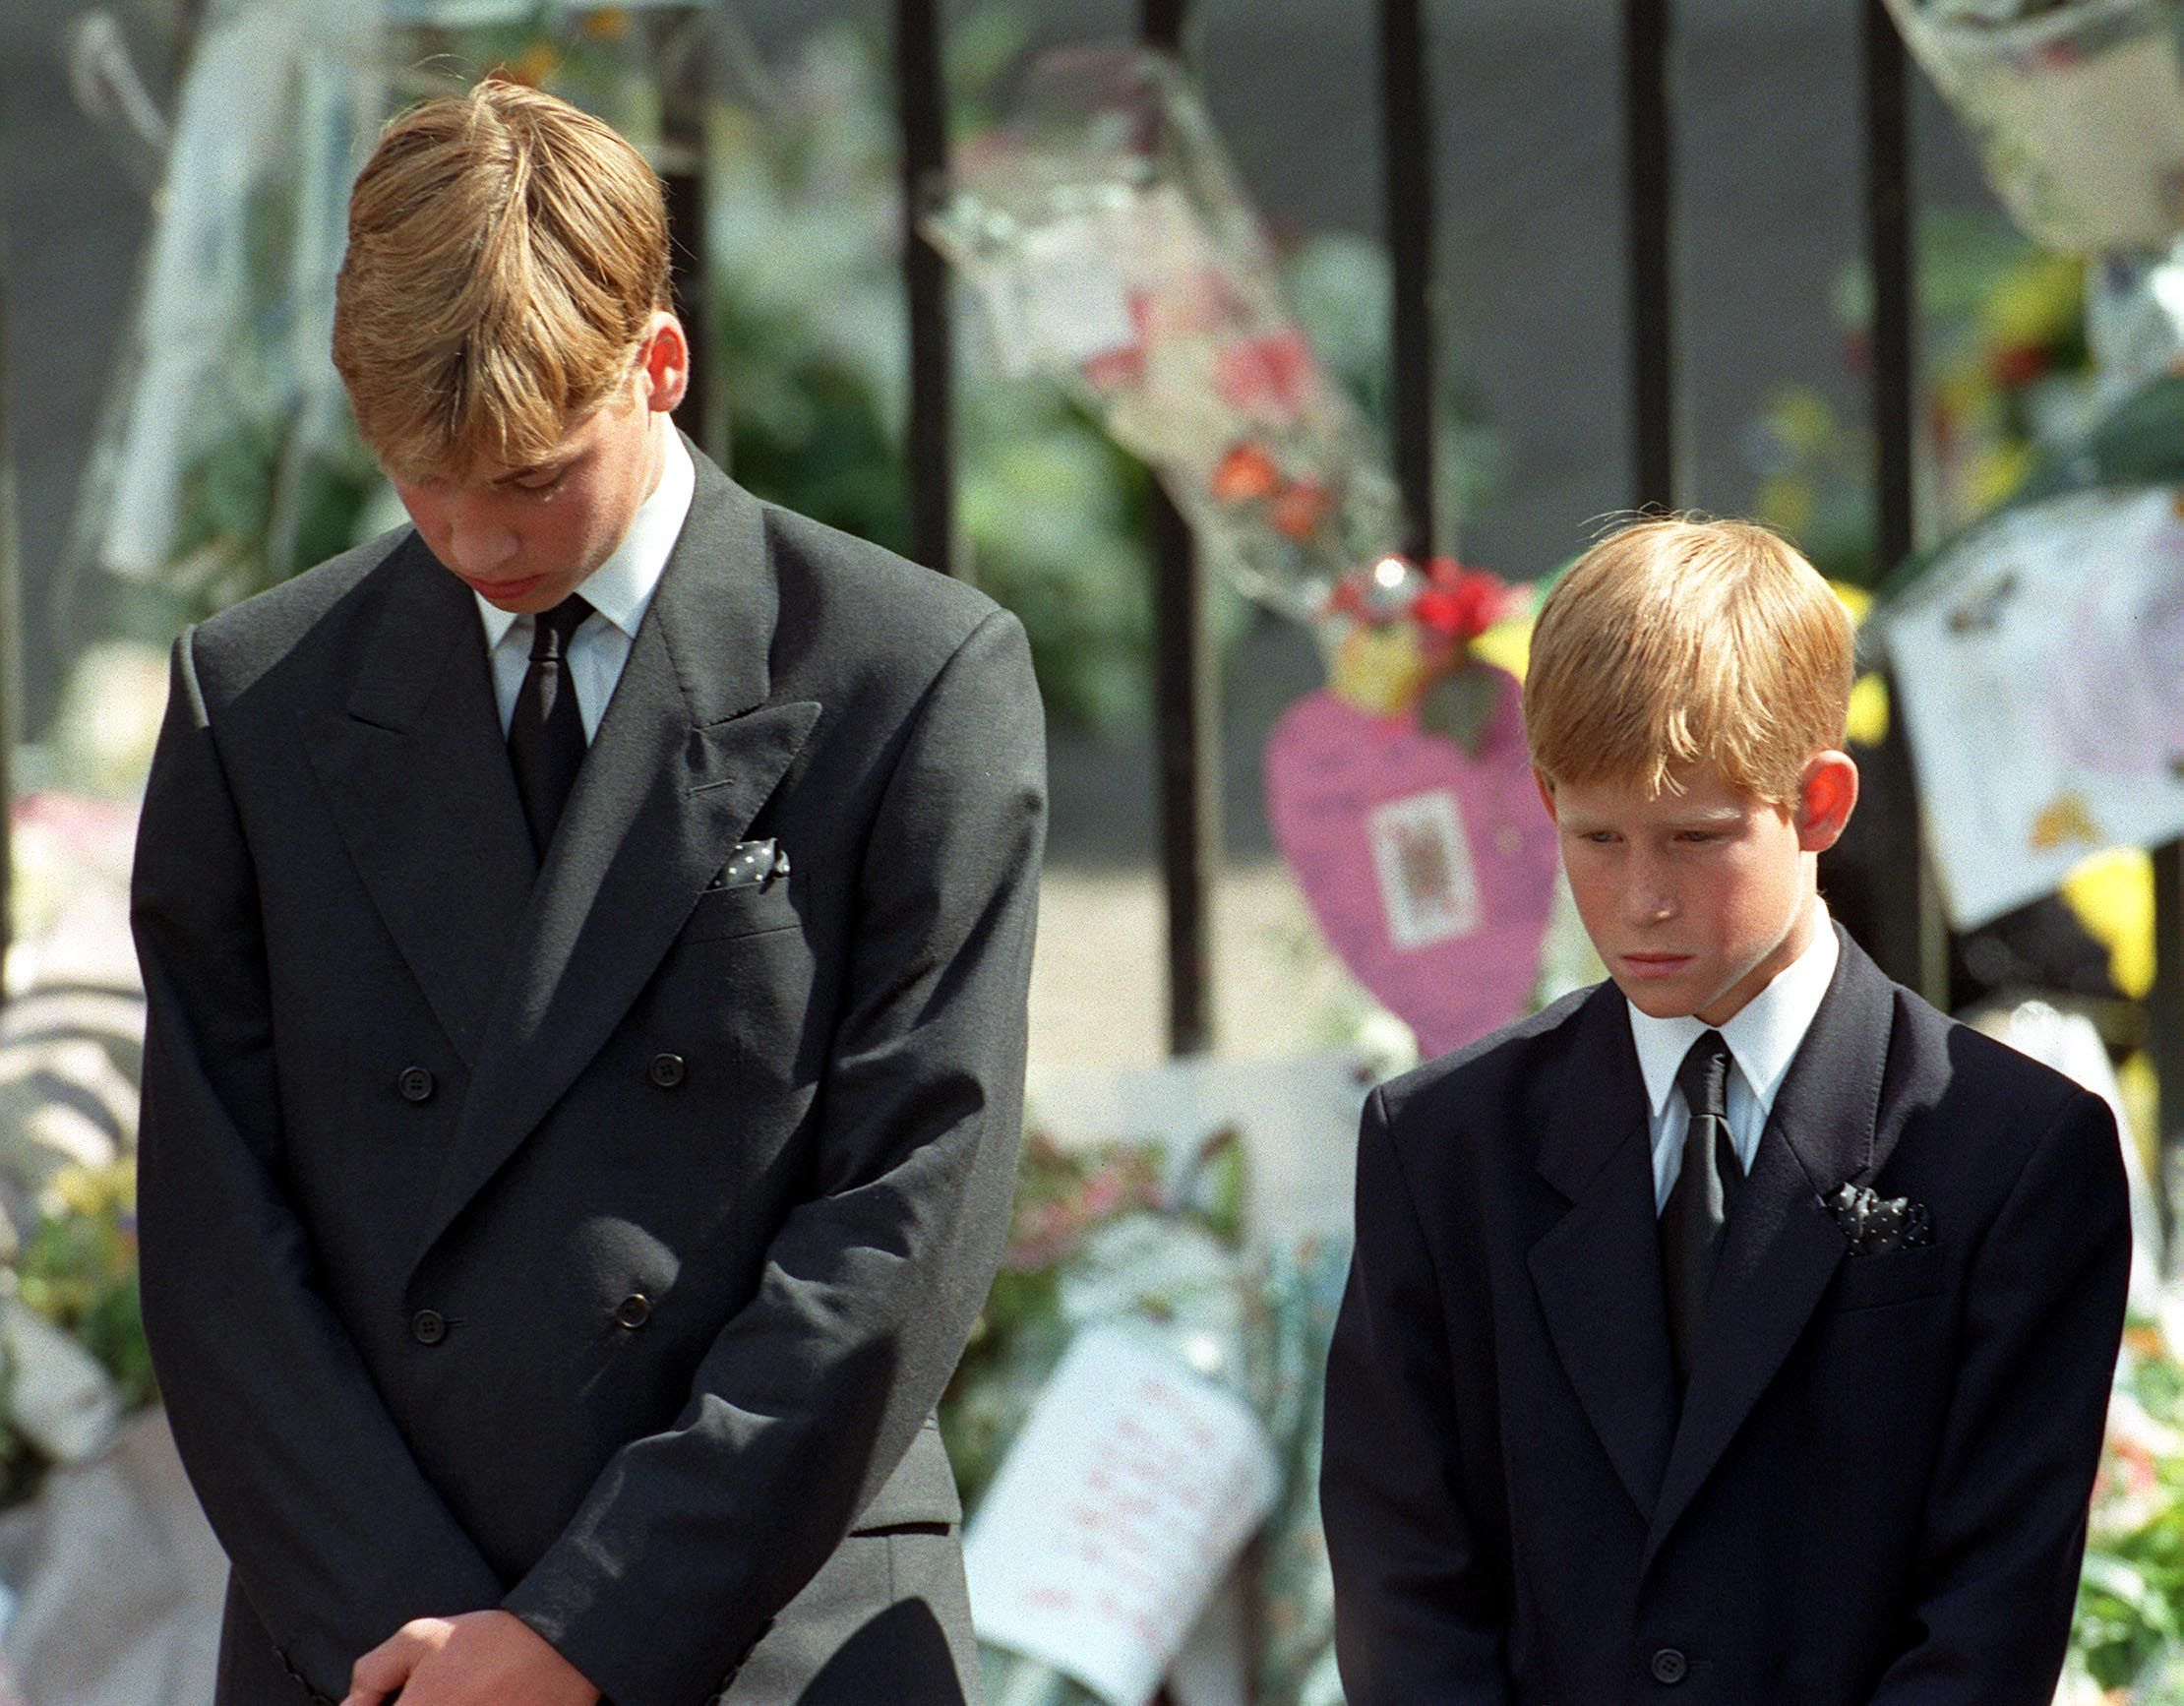 Royalty - Princess of Wales Funeral - Westminster Abbey, London